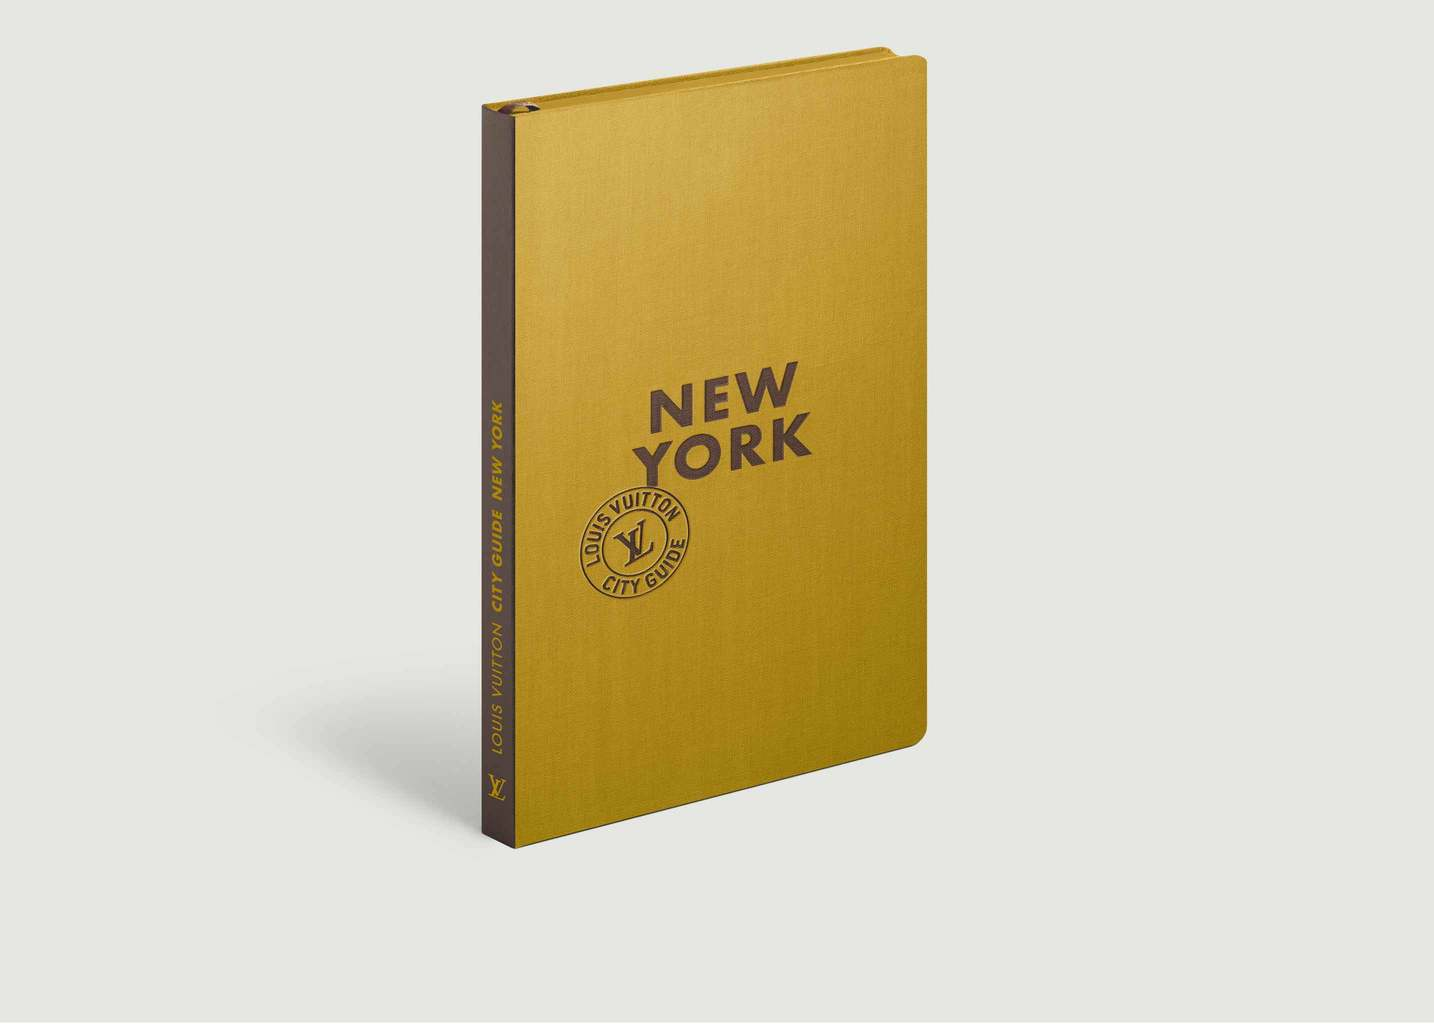 City Guide New-York 2020 - Louis Vuitton Travel Book